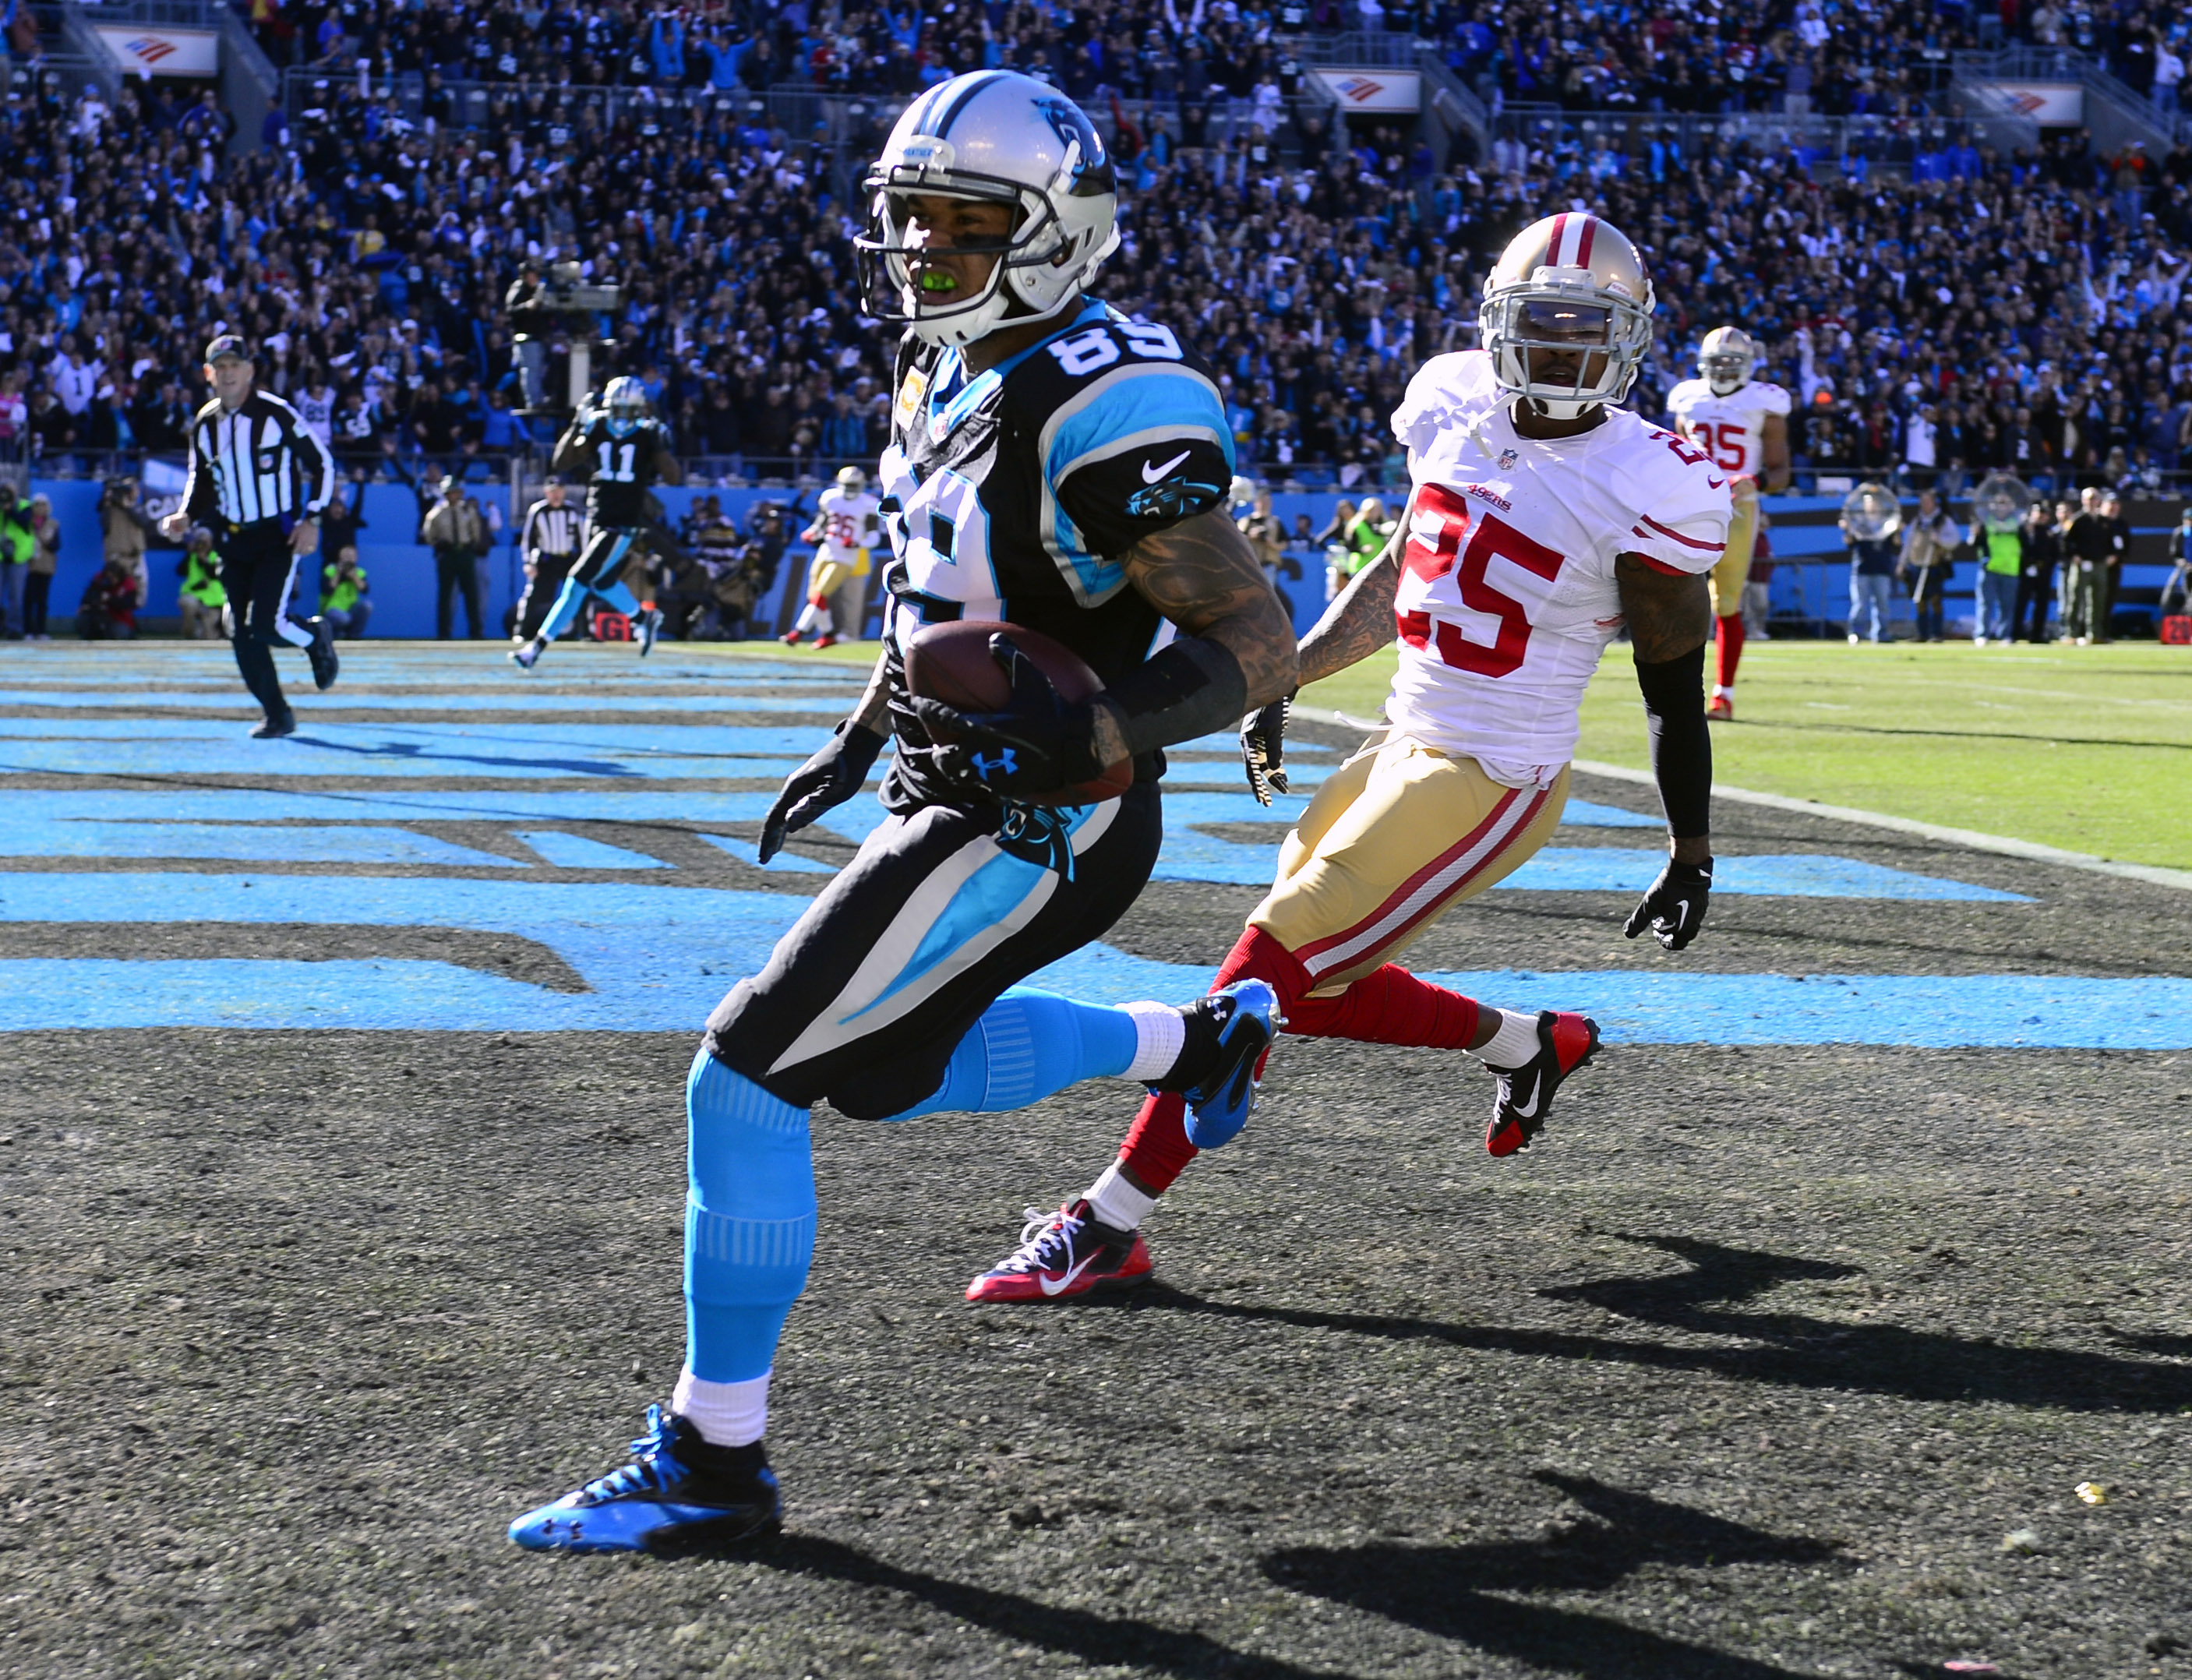 7670690-nfl-divisional-round-san-franciso-49ers-at-carolina-panthers